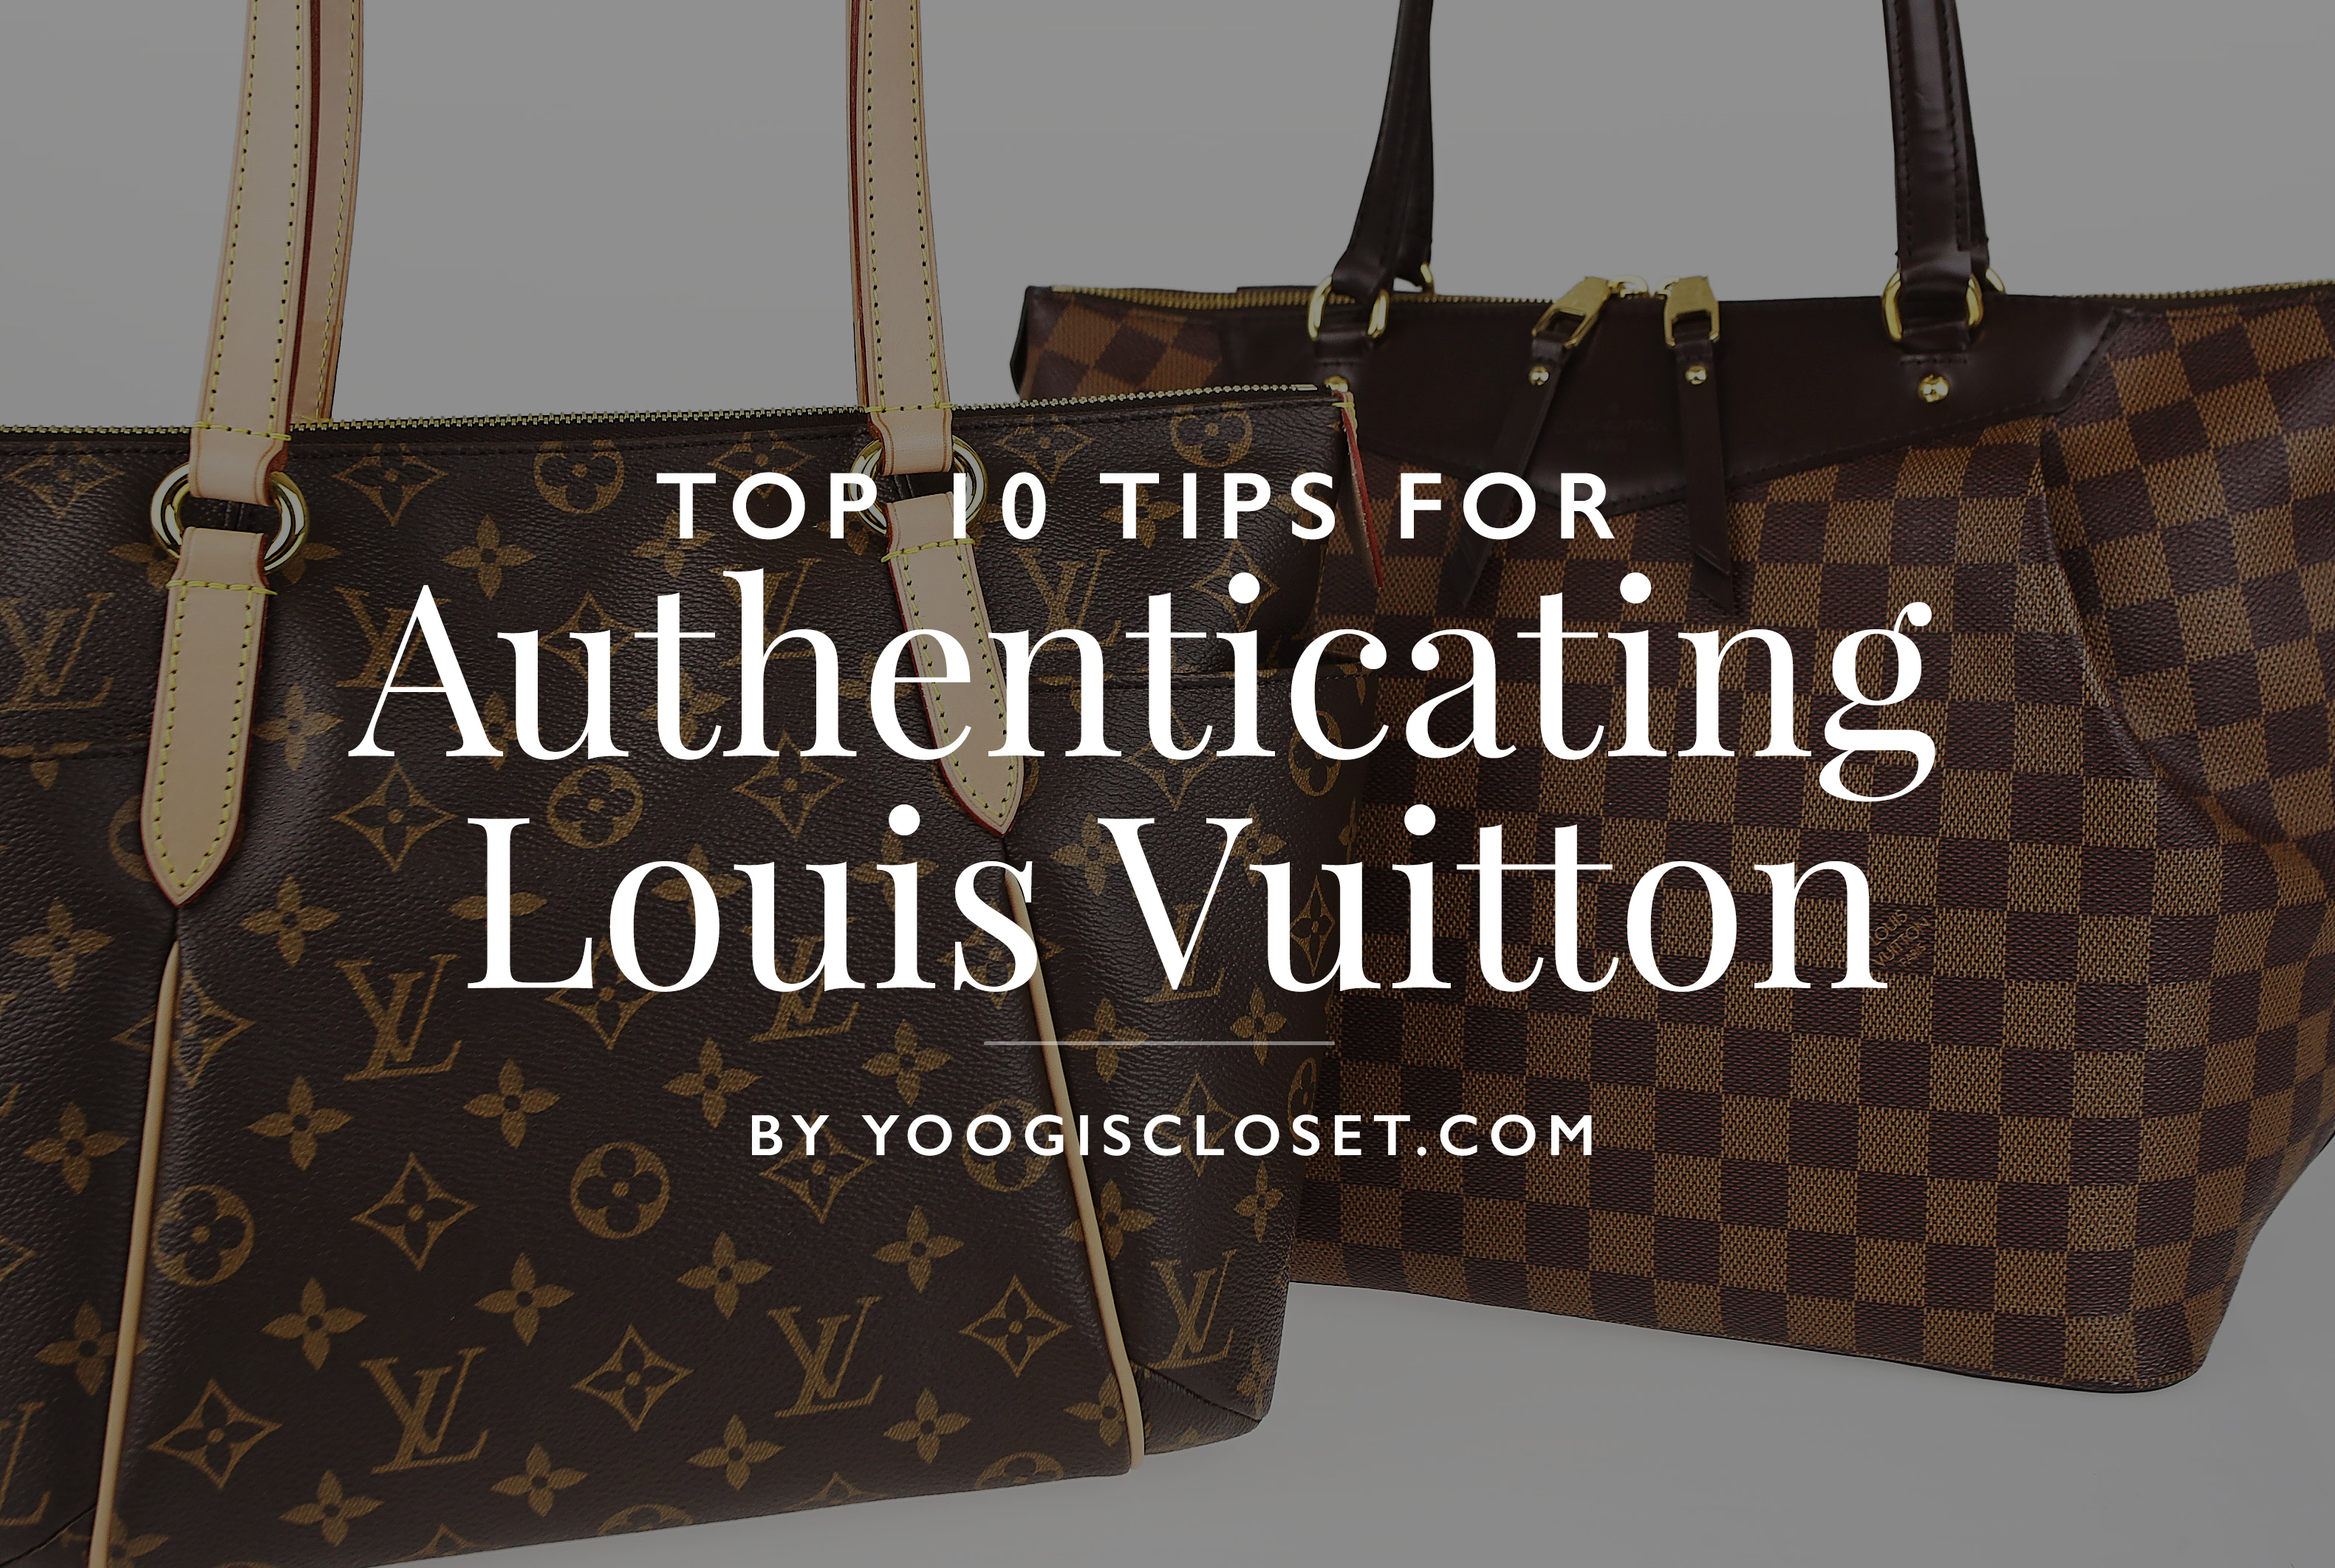 f1bd8ccd43f5 Top 10 Tips For Authenticating Louis Vuitton - Yoogi s Closet Blog